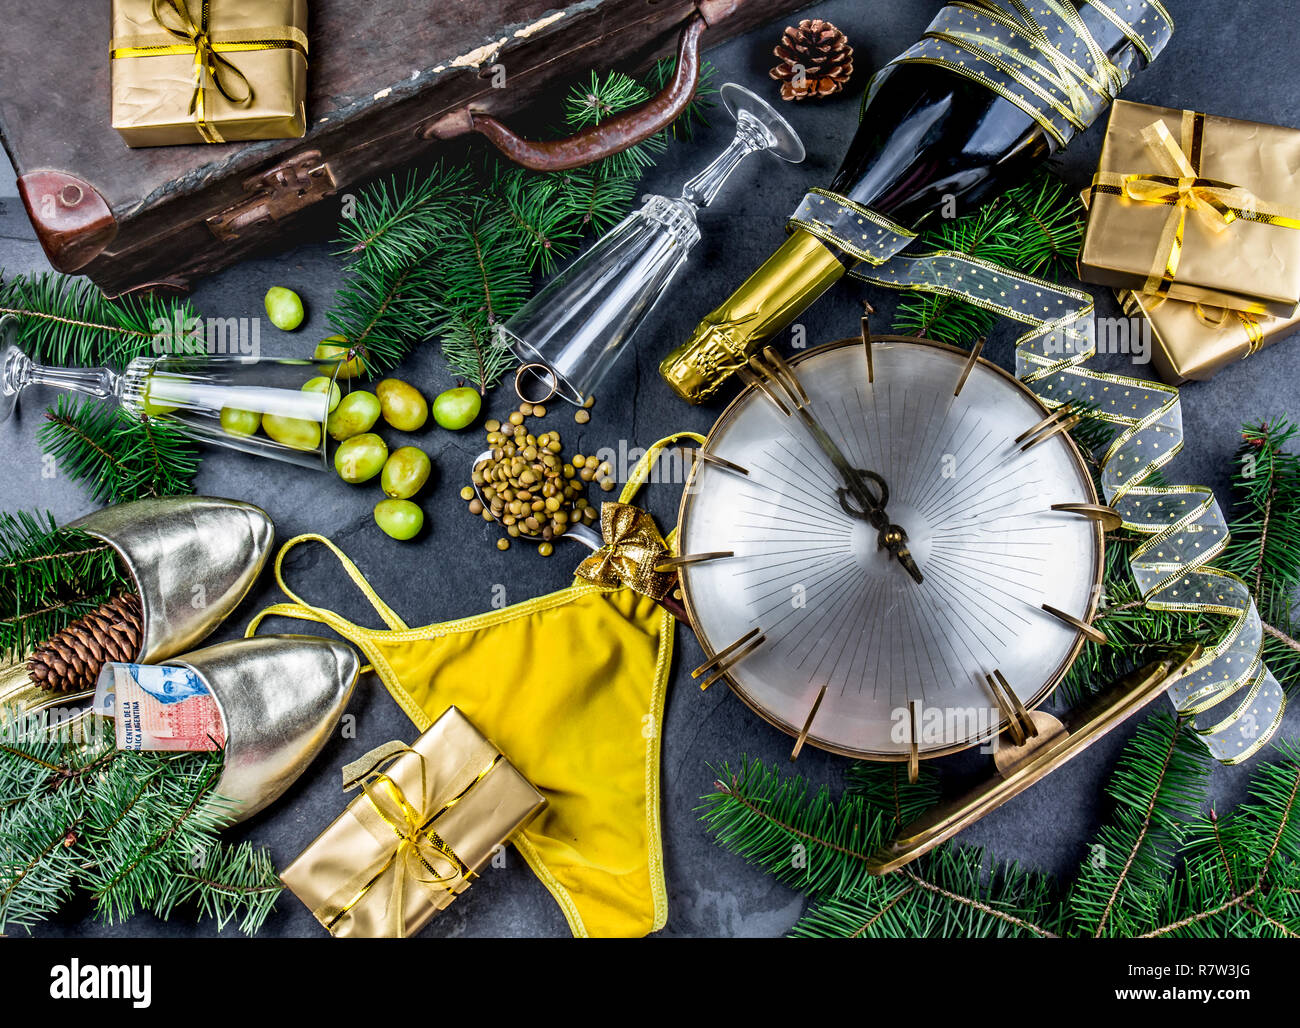 LATIN AMERICAN AND SPANISH NEW YEAR TRADITIONS. empty suitcase, lentil spoon, yellow interior clothes, gold ring in champagne, 12 grapes, money in shoe - ARGENTINE MONEY. - Stock Image